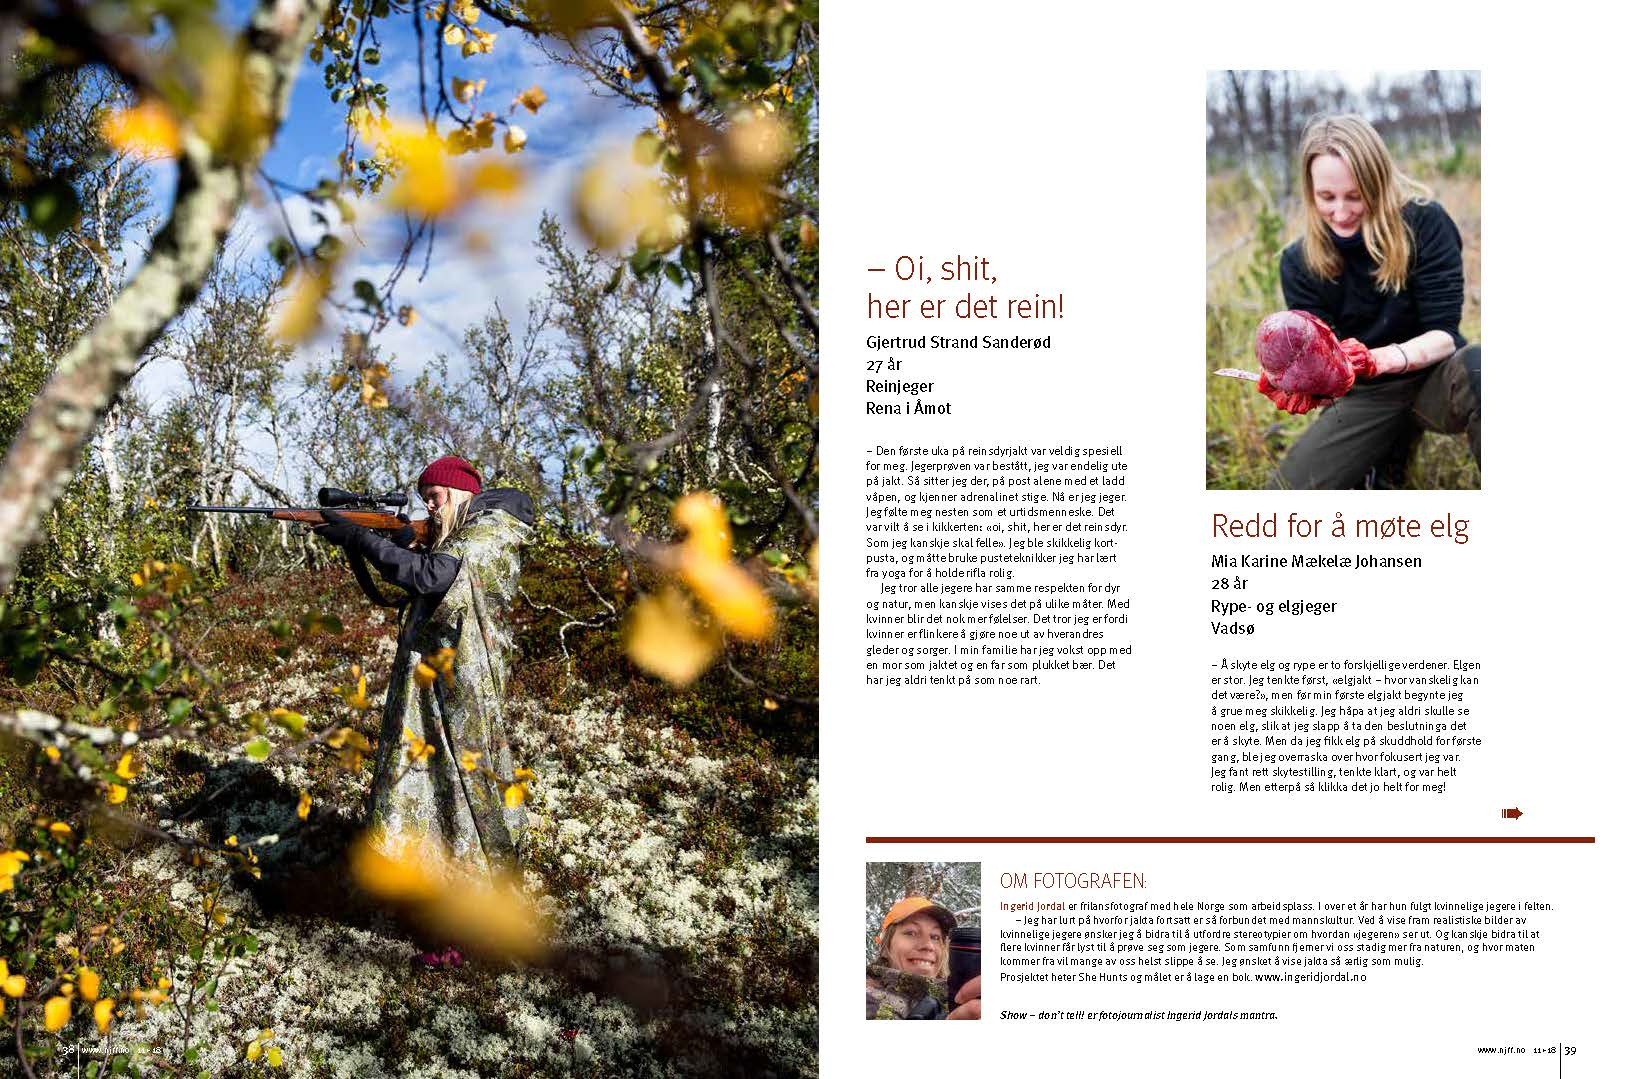 Part of 11 page spread in Norwegian hunting magazine Jakt & fiske.